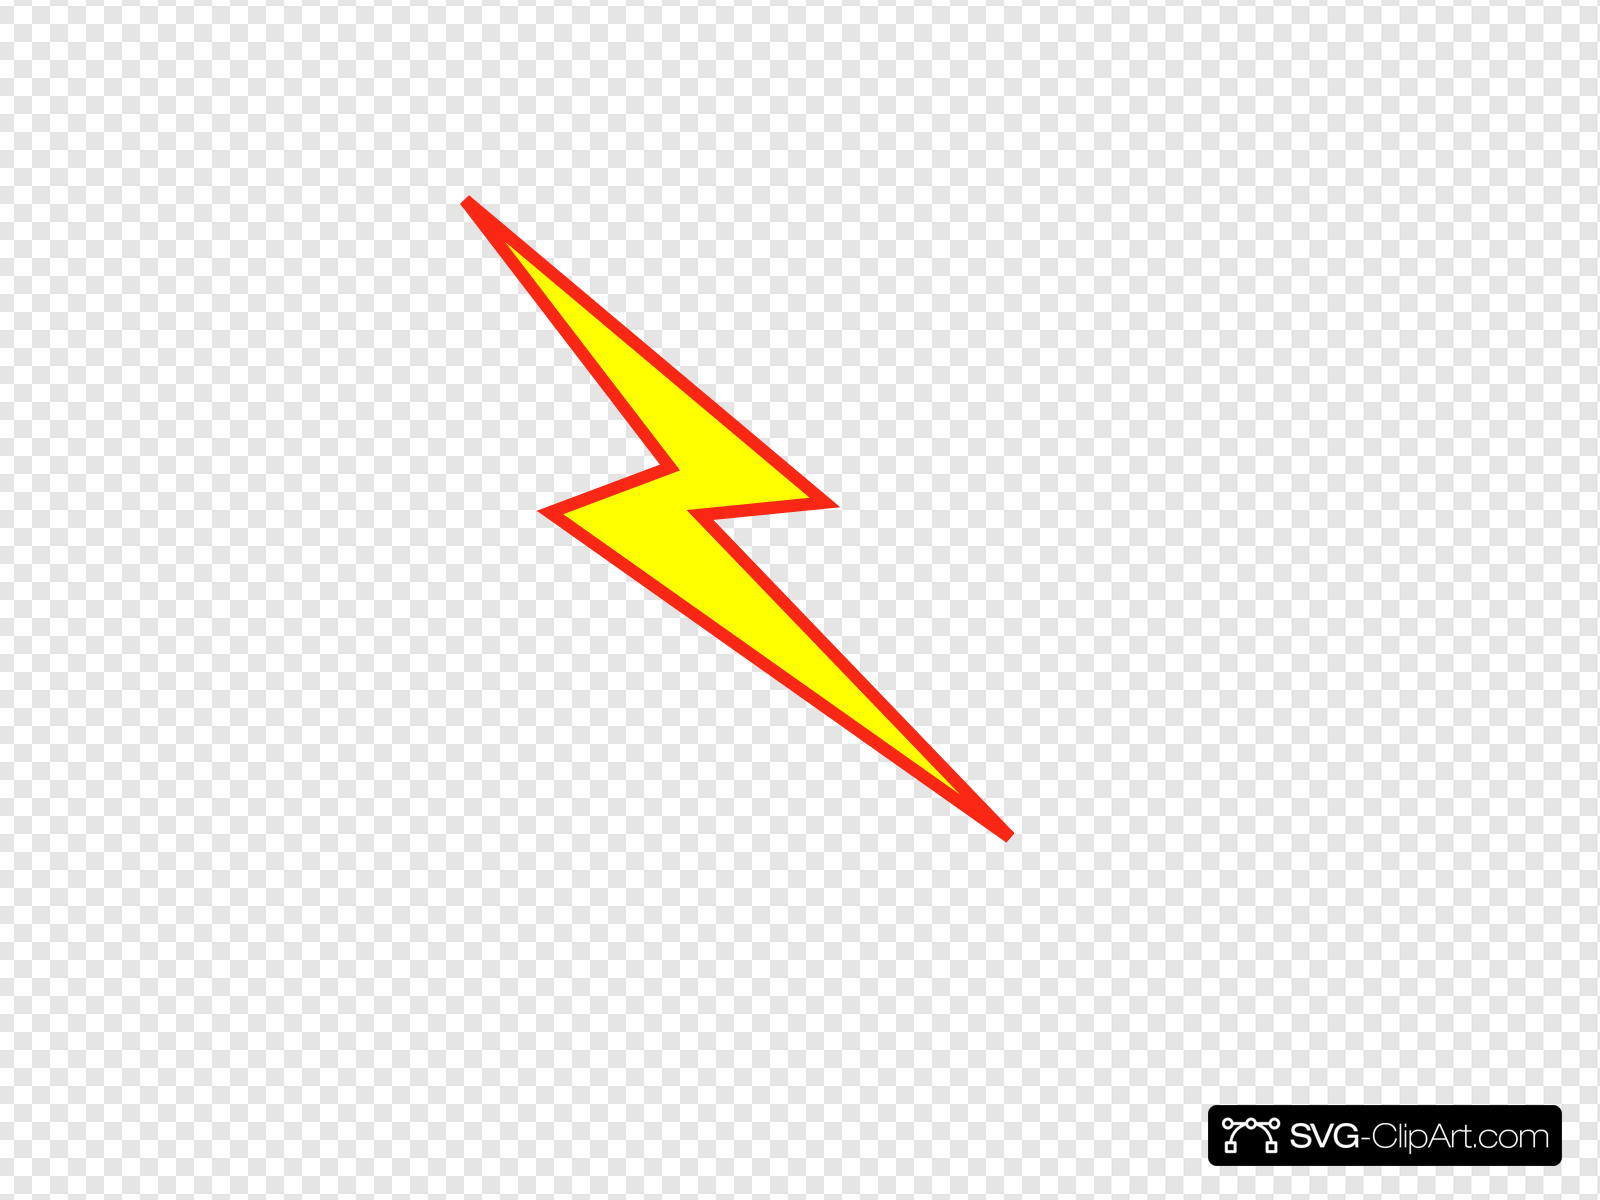 Yellow lightning clipart vector stock Red And Yellow Lightning Bolt Clip art, Icon and SVG - SVG ... vector stock